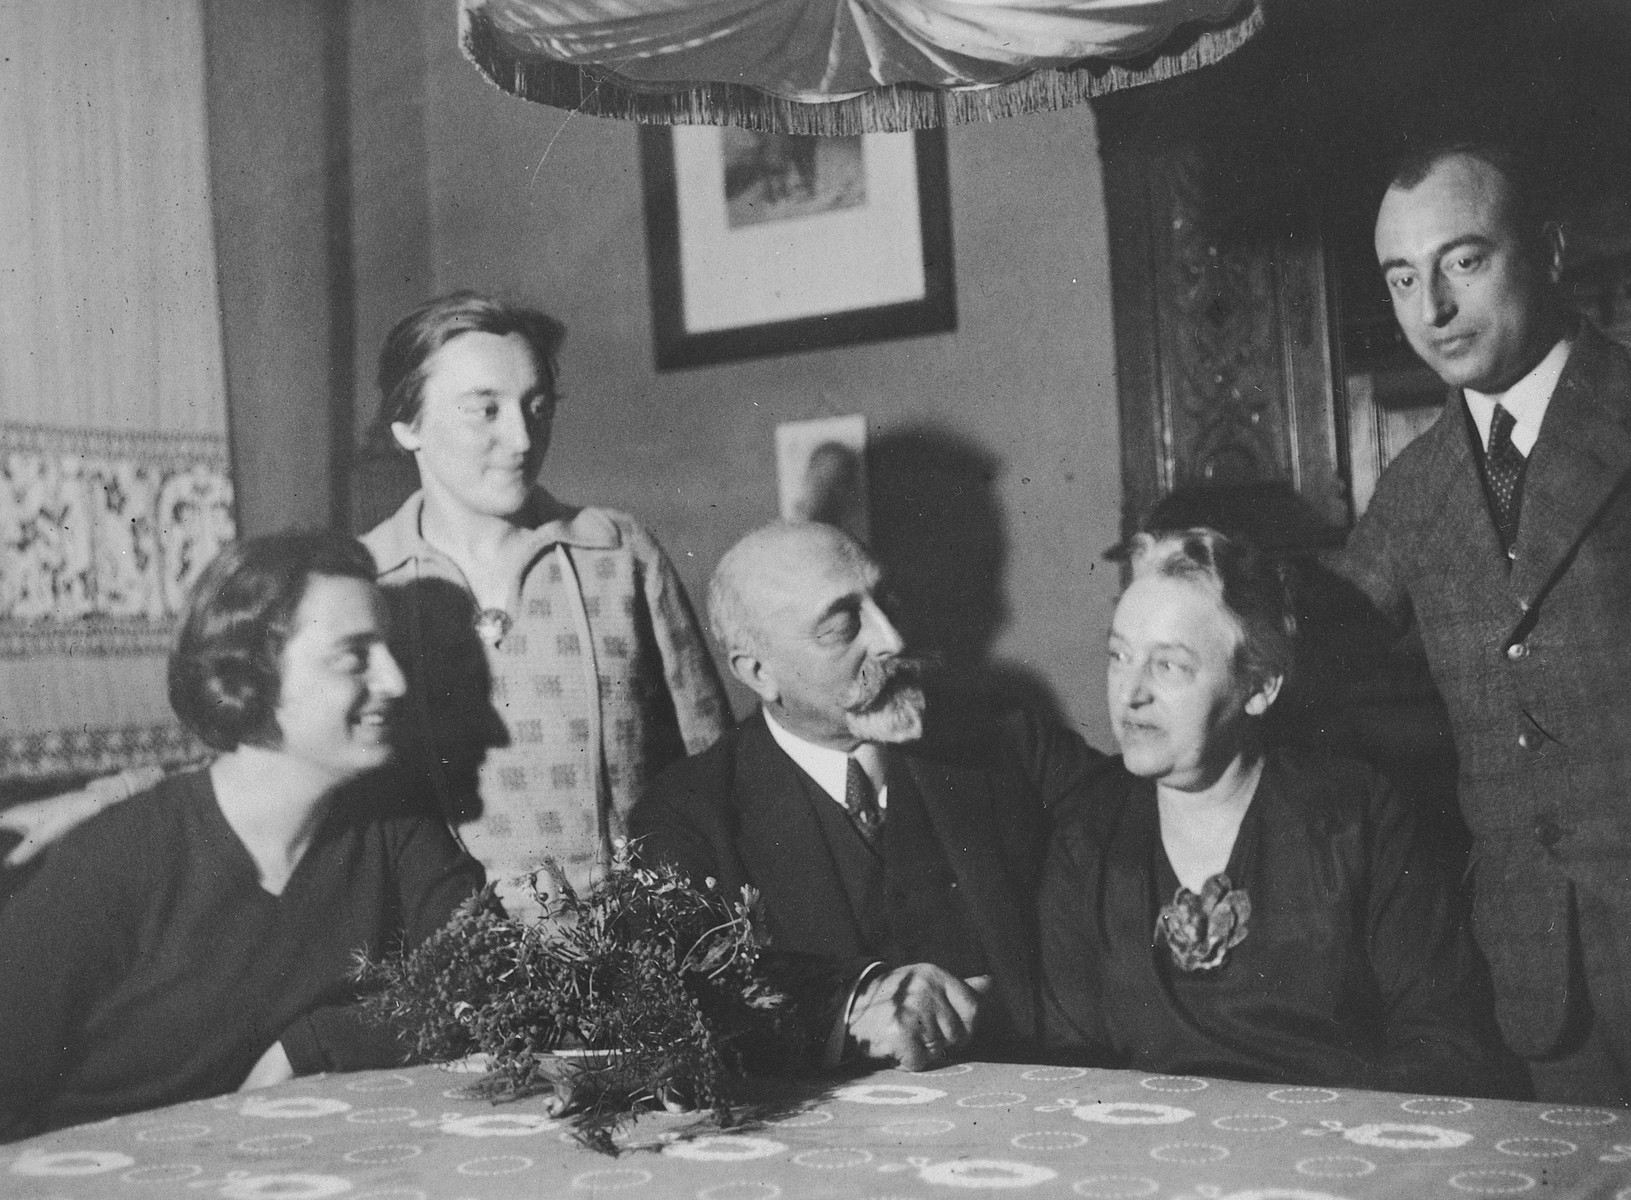 An elderly German-Jewish couple sits at their table holding hands, surrounded by their three children.  Pictured in the center are Leopold Herz and his wife Lena Solomon Herz.  Also pictured are their children, Richard, Lotte and Lilly.